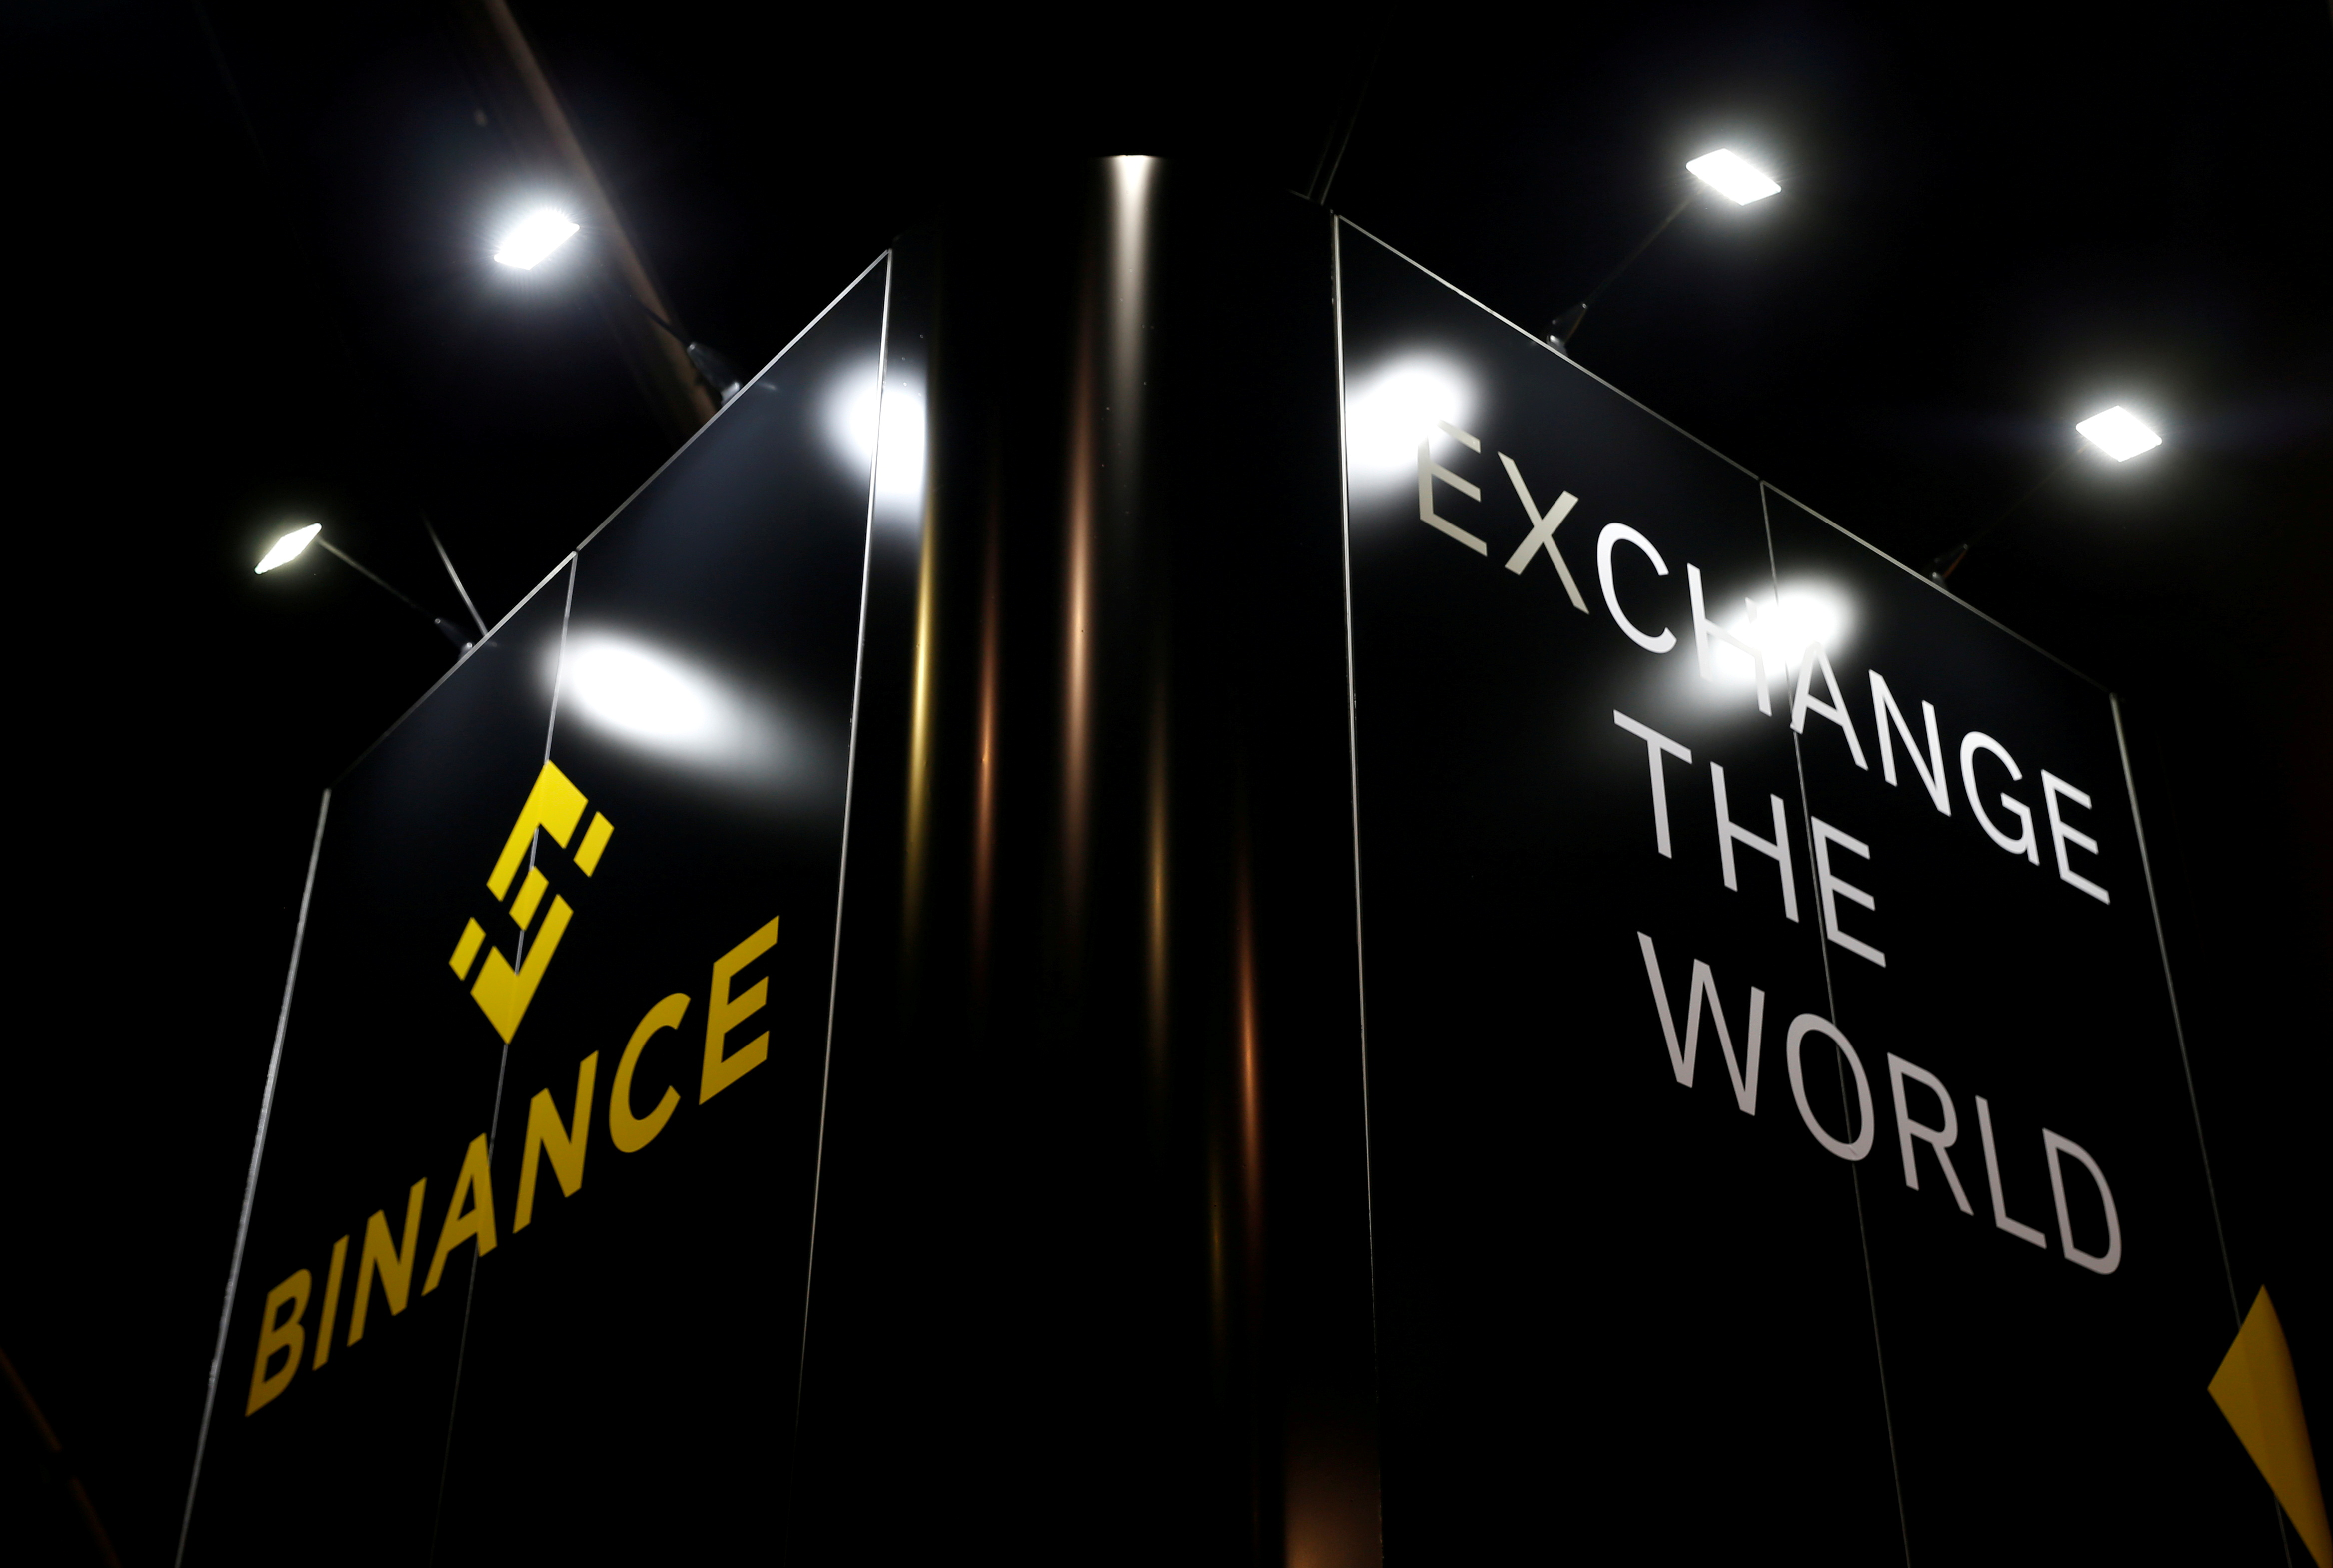 The logo of Binance is seen on their exhibition stand at the Delta Summit, Malta's official Blockchain and Digital Innovation event promoting cryptocurrency, in Ta' Qali, Malta October 3, 2019.   REUTERS/Darrin Zammit Lupi